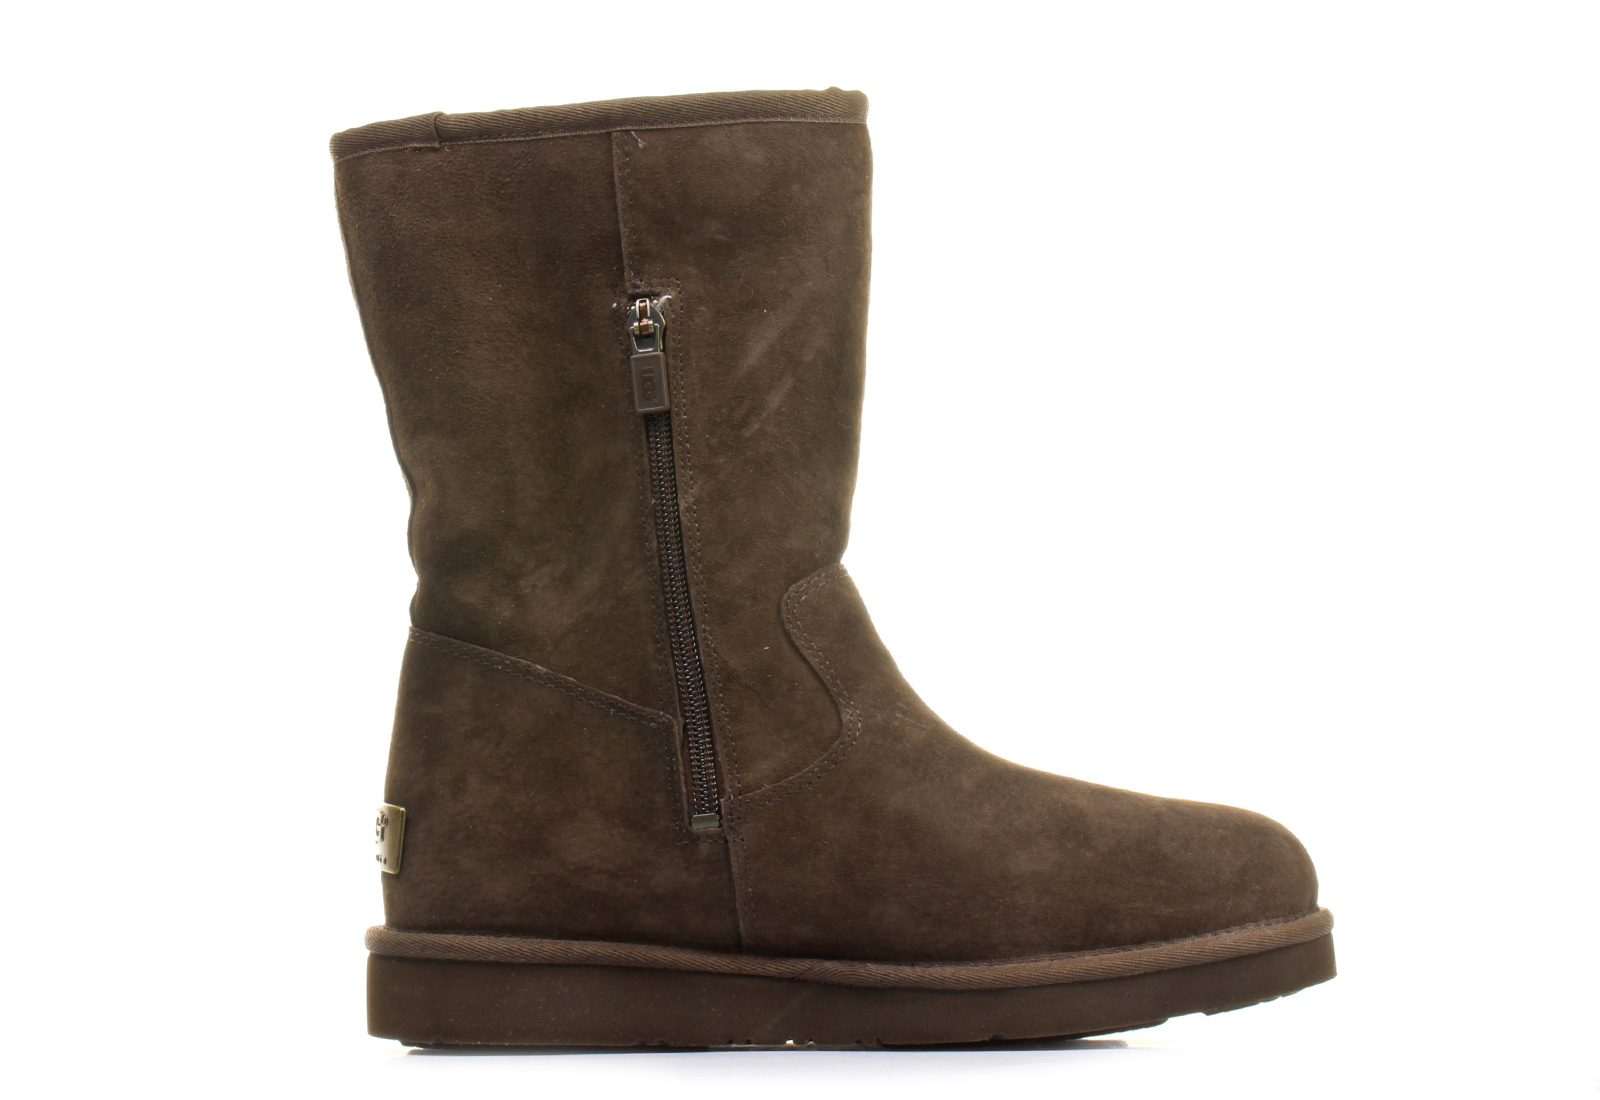 Ugg Boots W Pierce 1006031 Cho Online Shop For